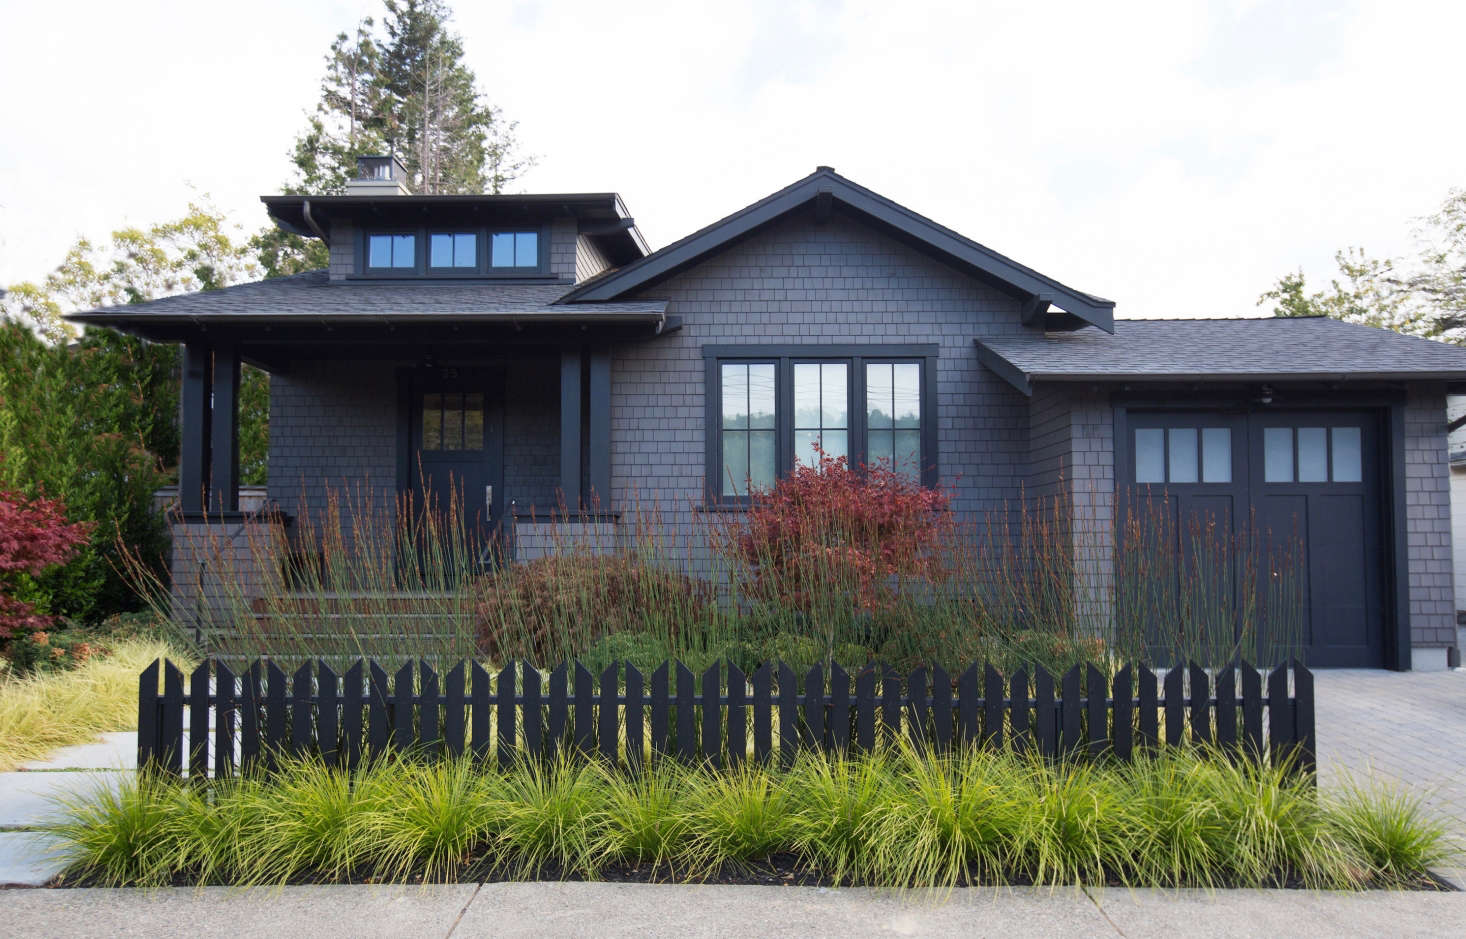 After searching for months for just the right dark stain color, Raleigh Zwerin suddenly saw it by accident when she drove by a house under construction in nearby San Francisco.